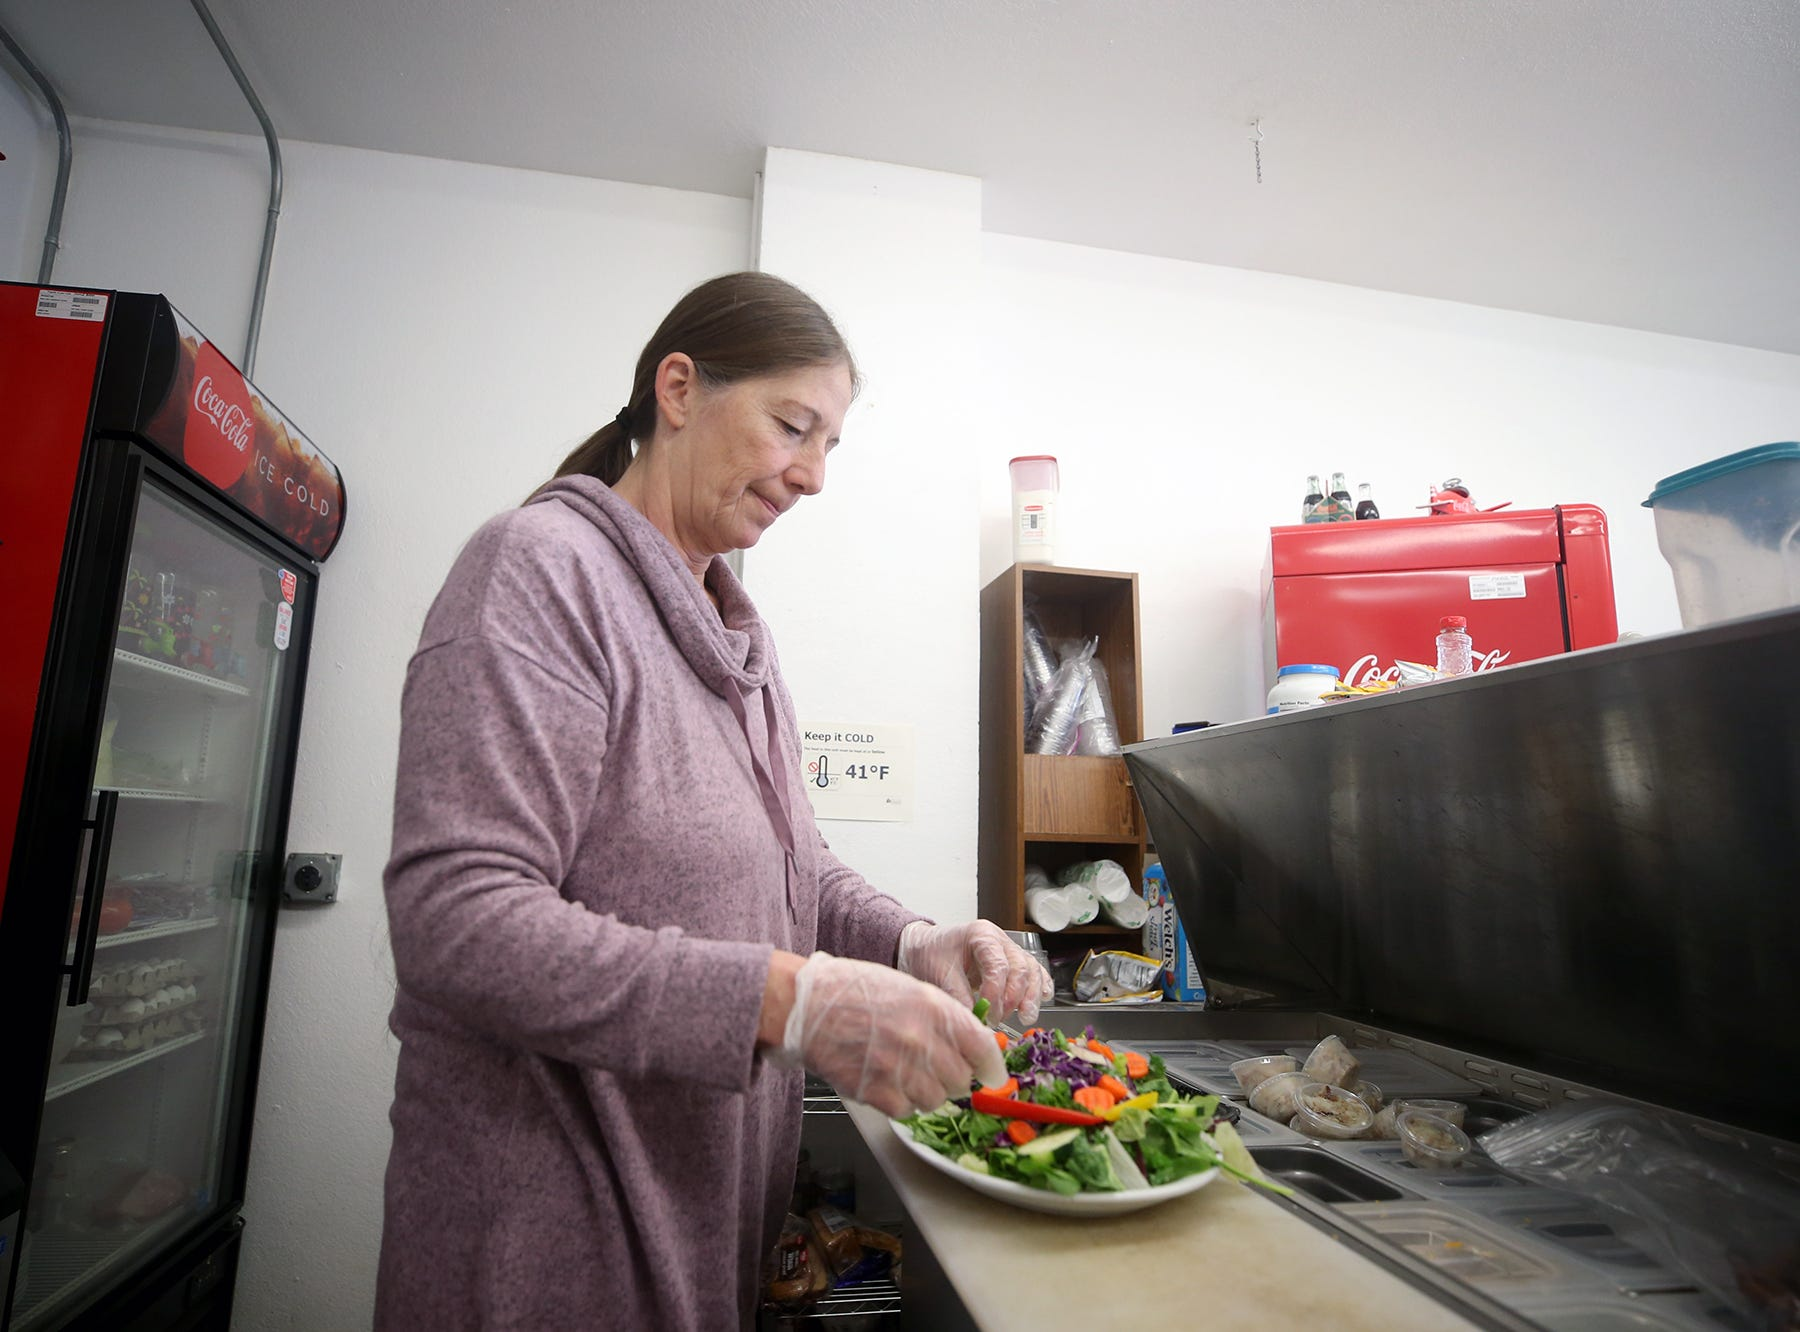 Lanette Duchesneau makes a crab salad with her special salad mix on Friday, November, 30, 2018. She is the owner of The Salad Shack in East Bremerton. The romaine lettuce scare has hurt her business.